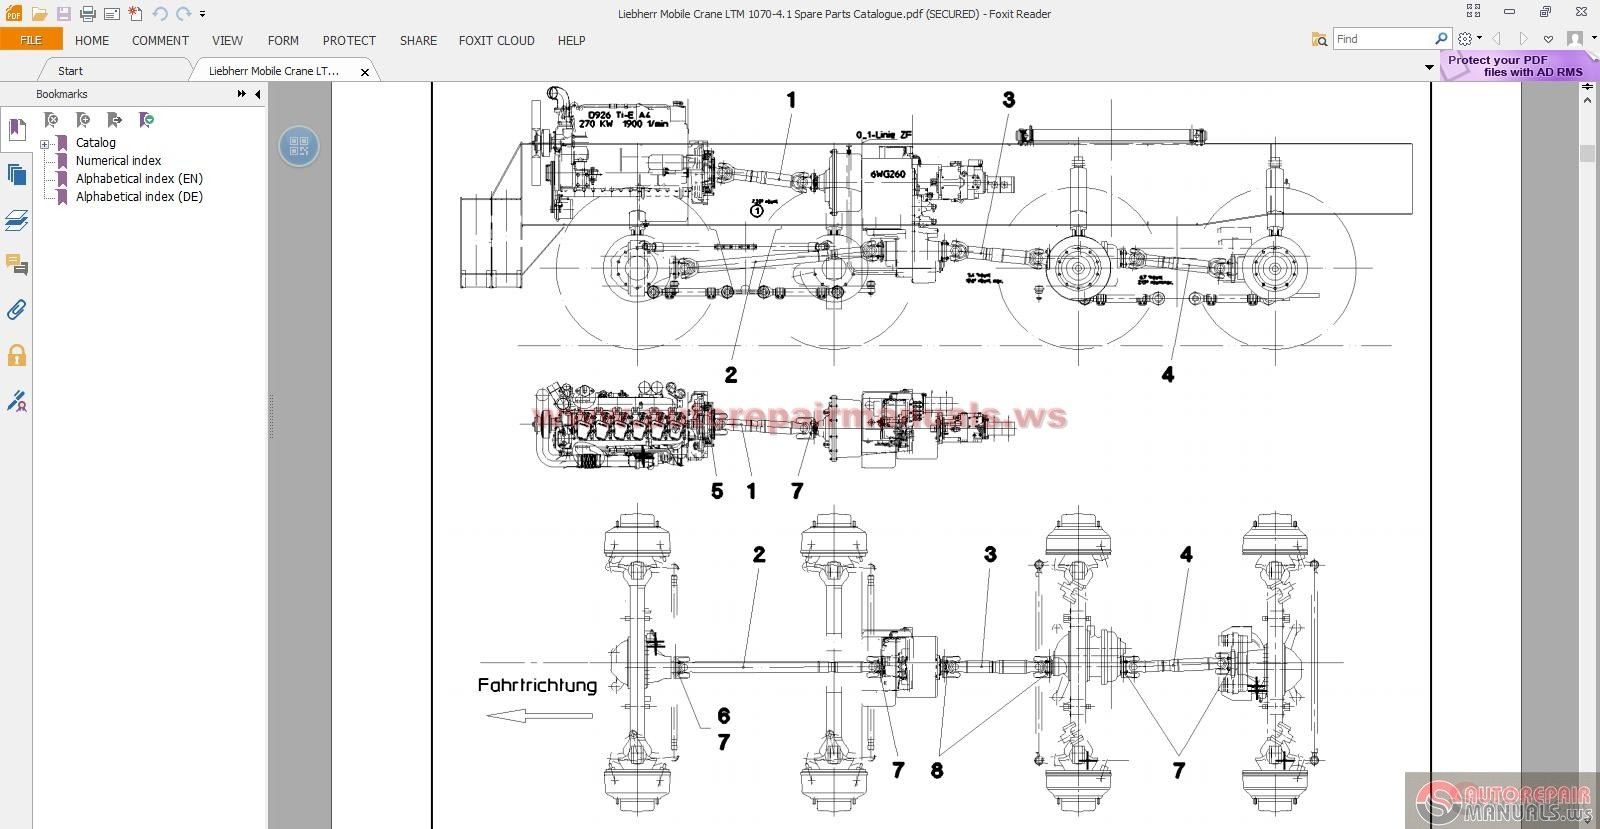 Liebherr Mobile Crane Ltm Spare Parts Catalogue on Palfinger Wiring Diagrams